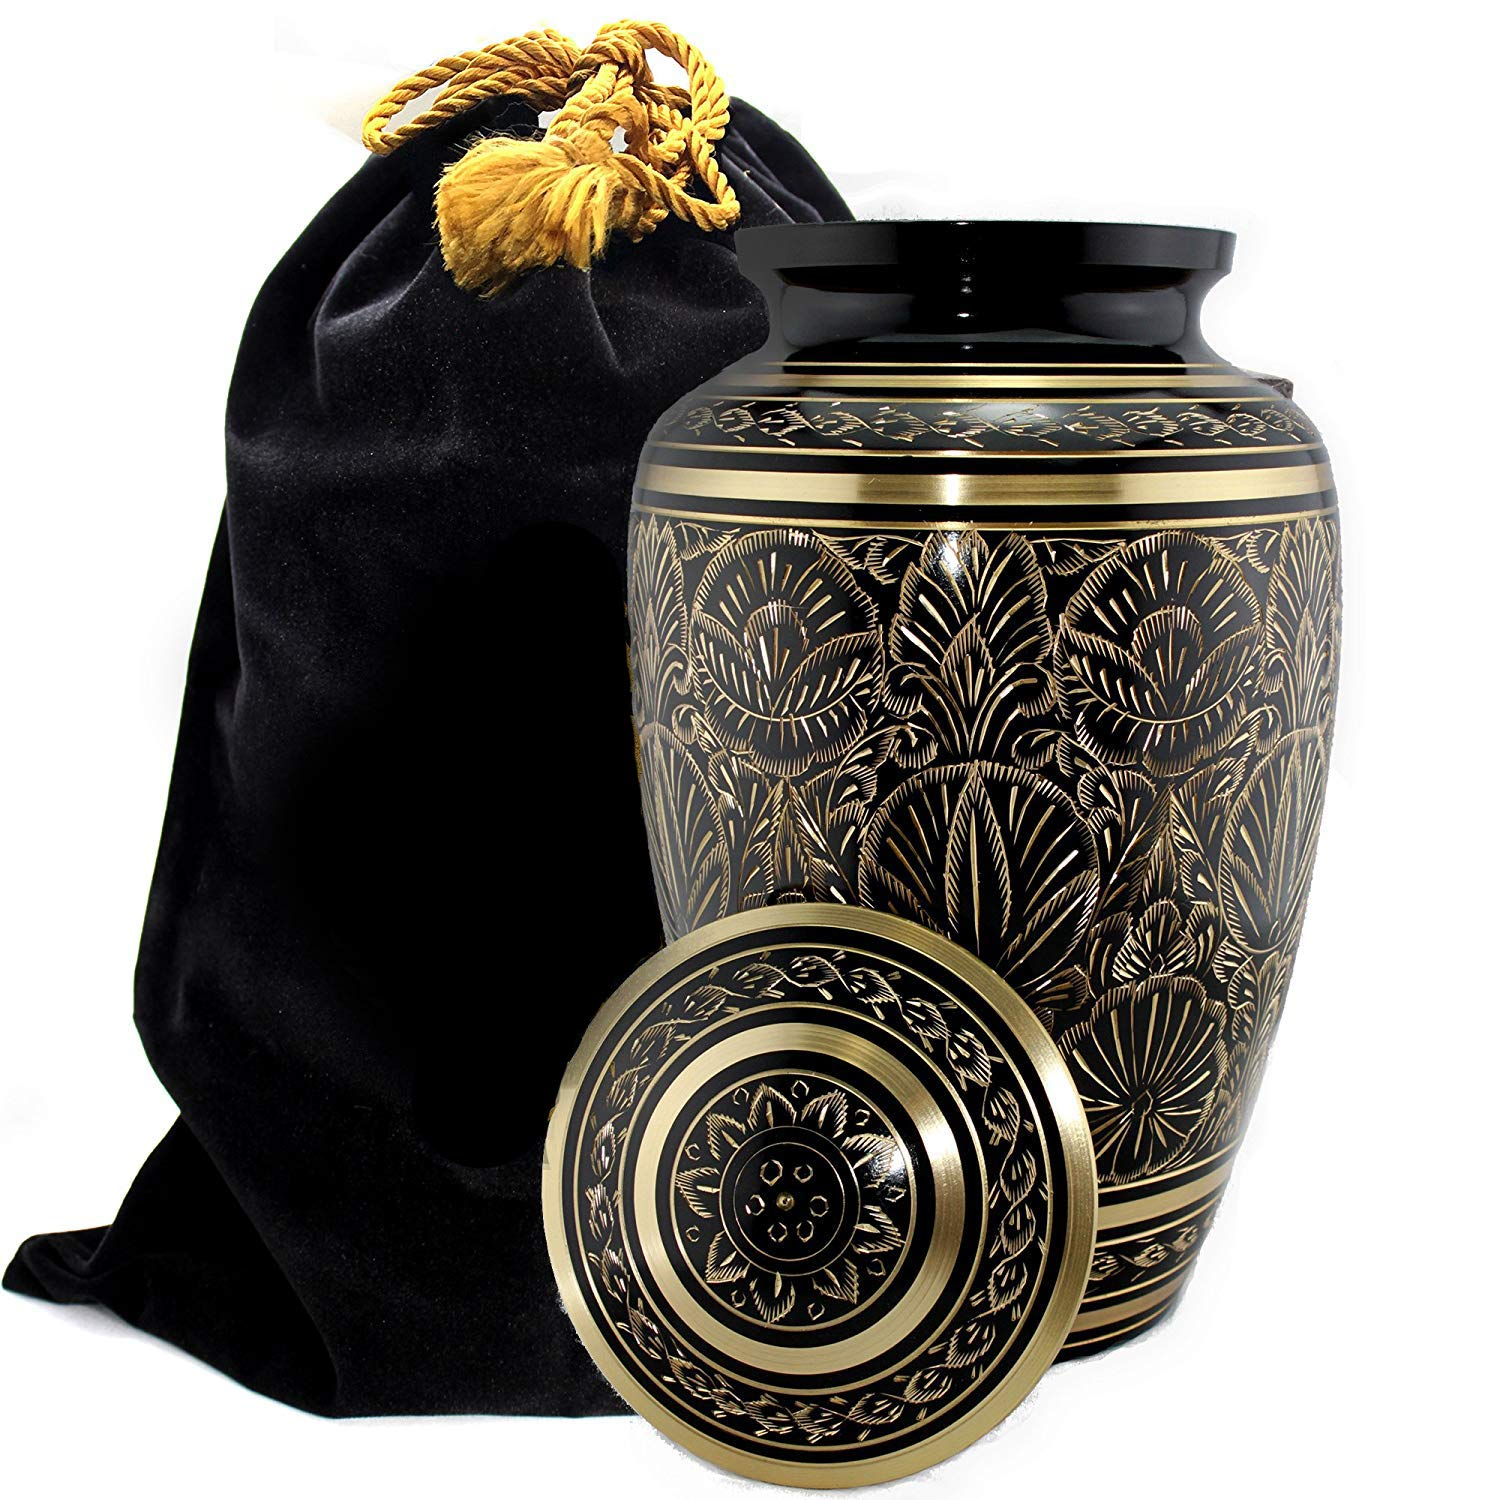 Majestic Radiance 100 Brass Cremation Urn for Human Ashes Large and Small Large